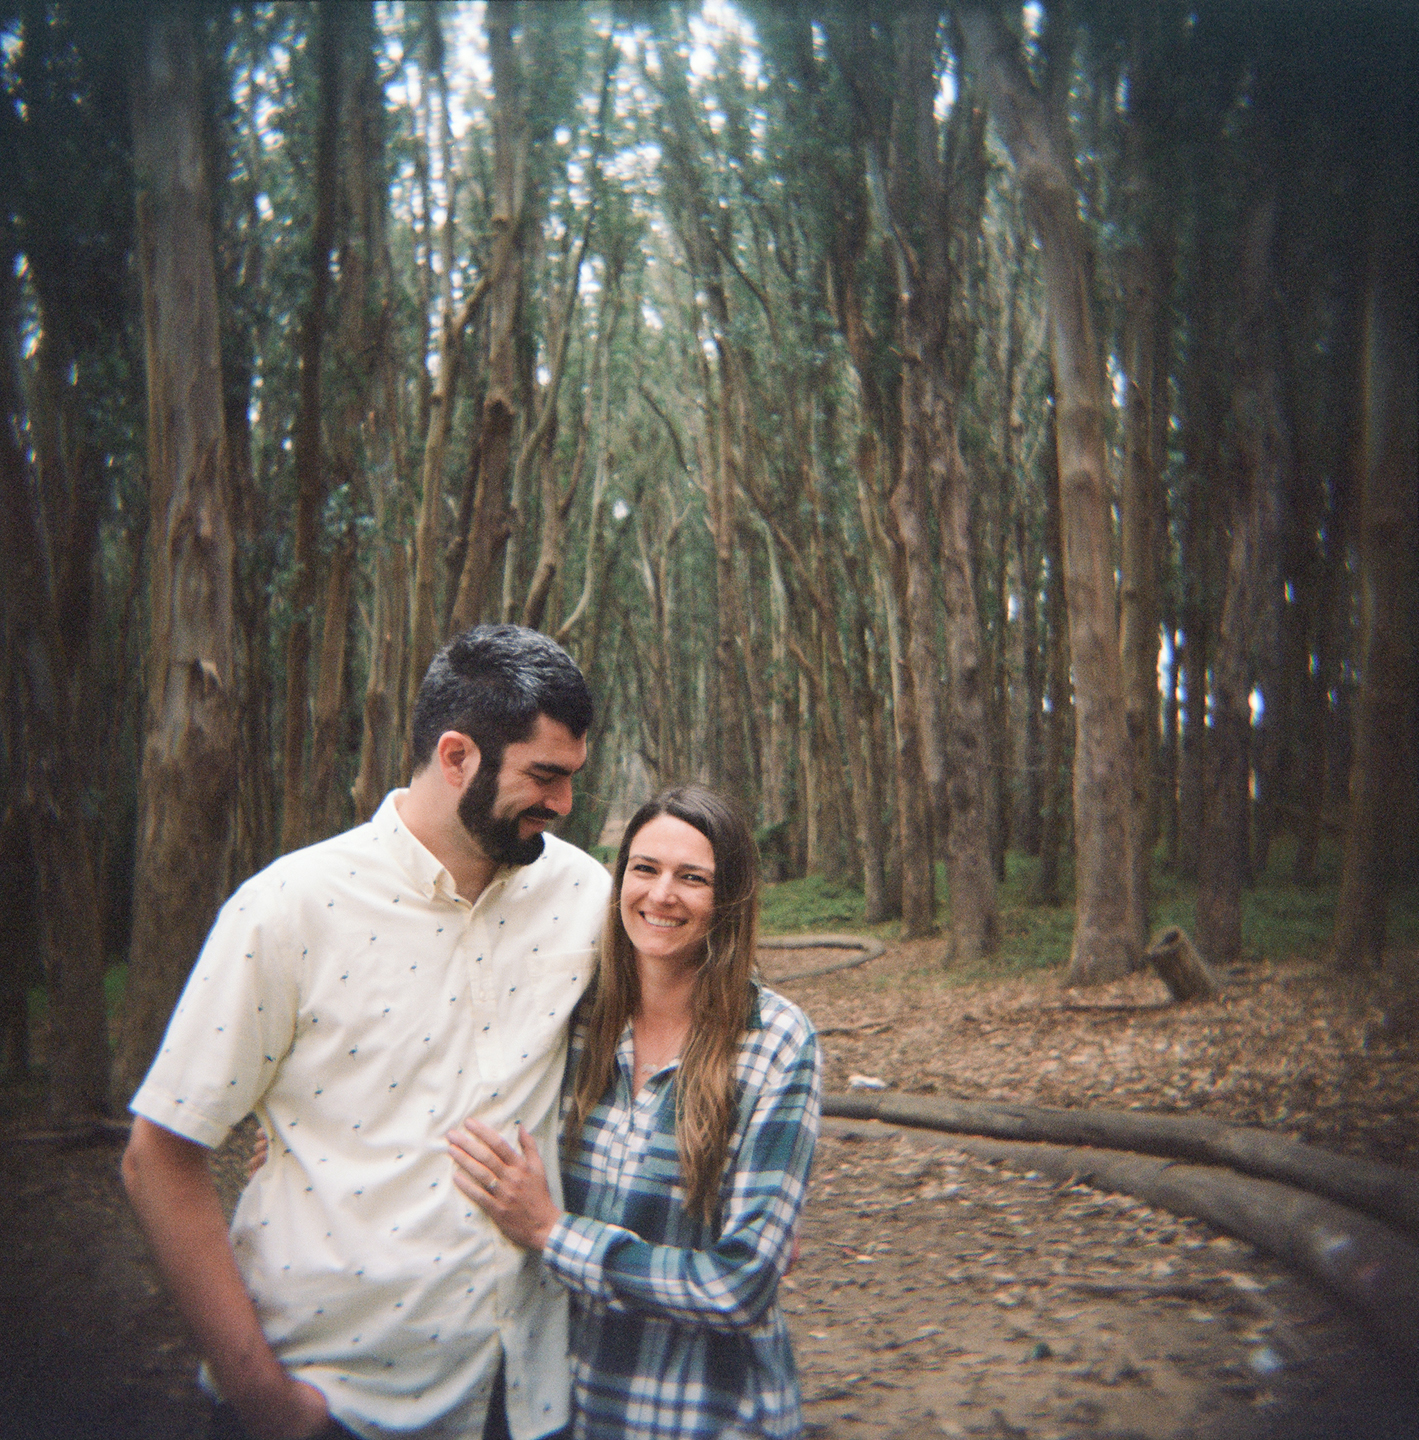 A happy engaged couple in the Presidio of San Francisco.